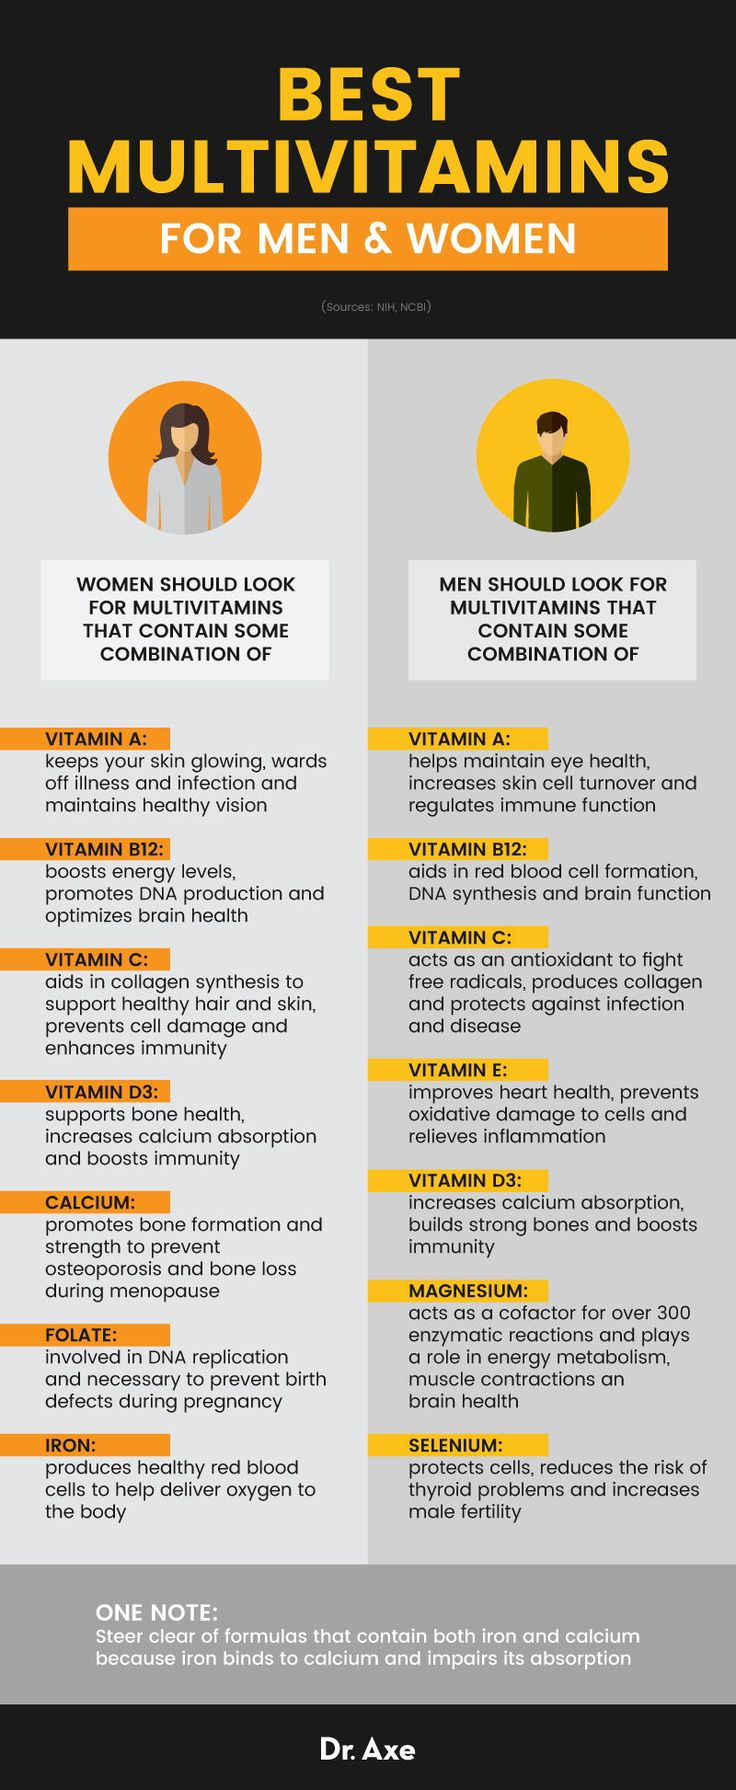 A multivitamin contains a mix of vitamins, minerals and other nutrients to help …